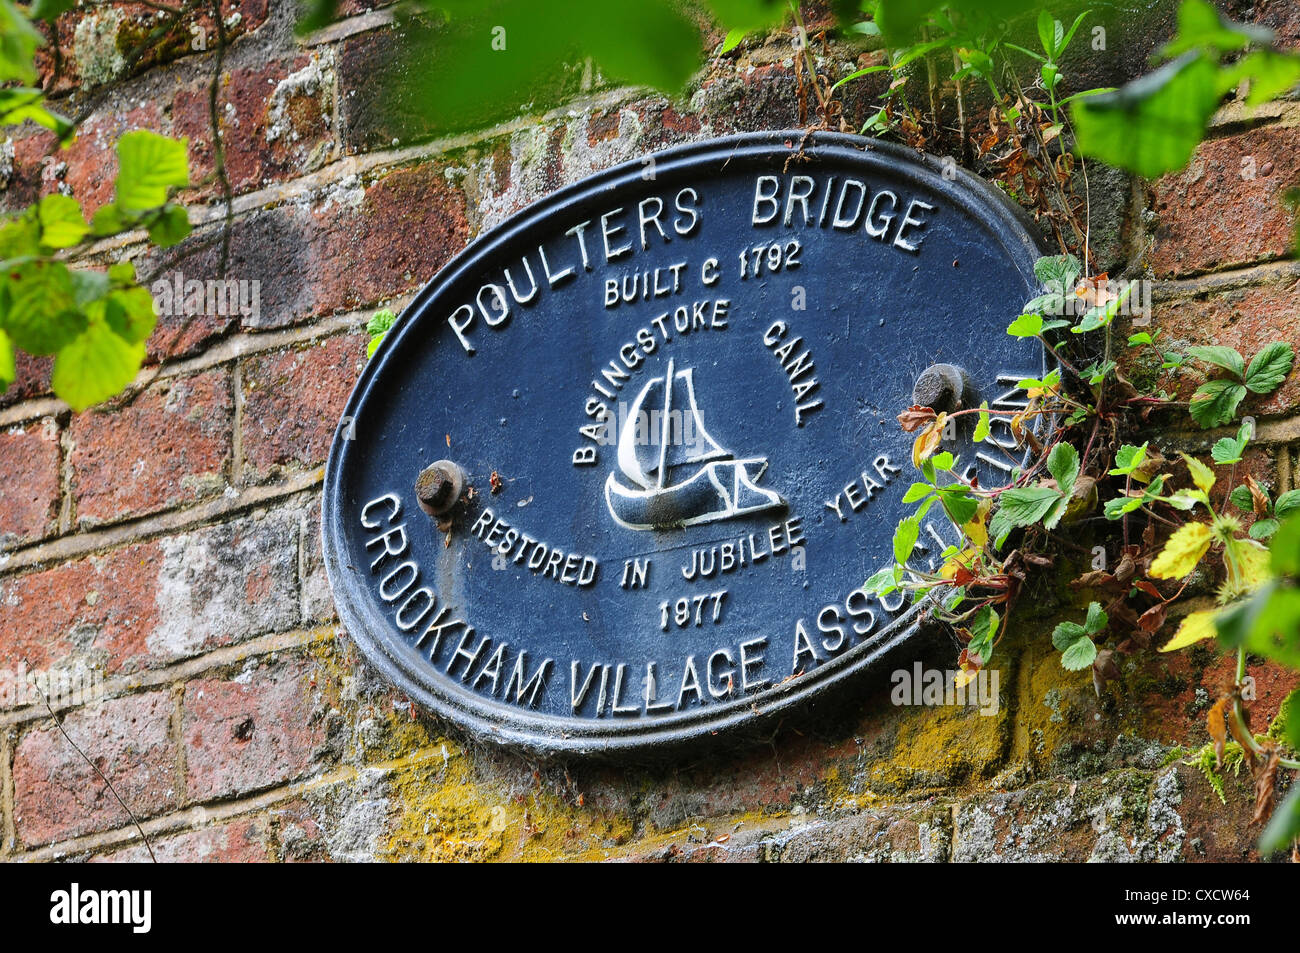 A sign for Poulters Bridge on the Basingstoke Canal UK - Stock Image